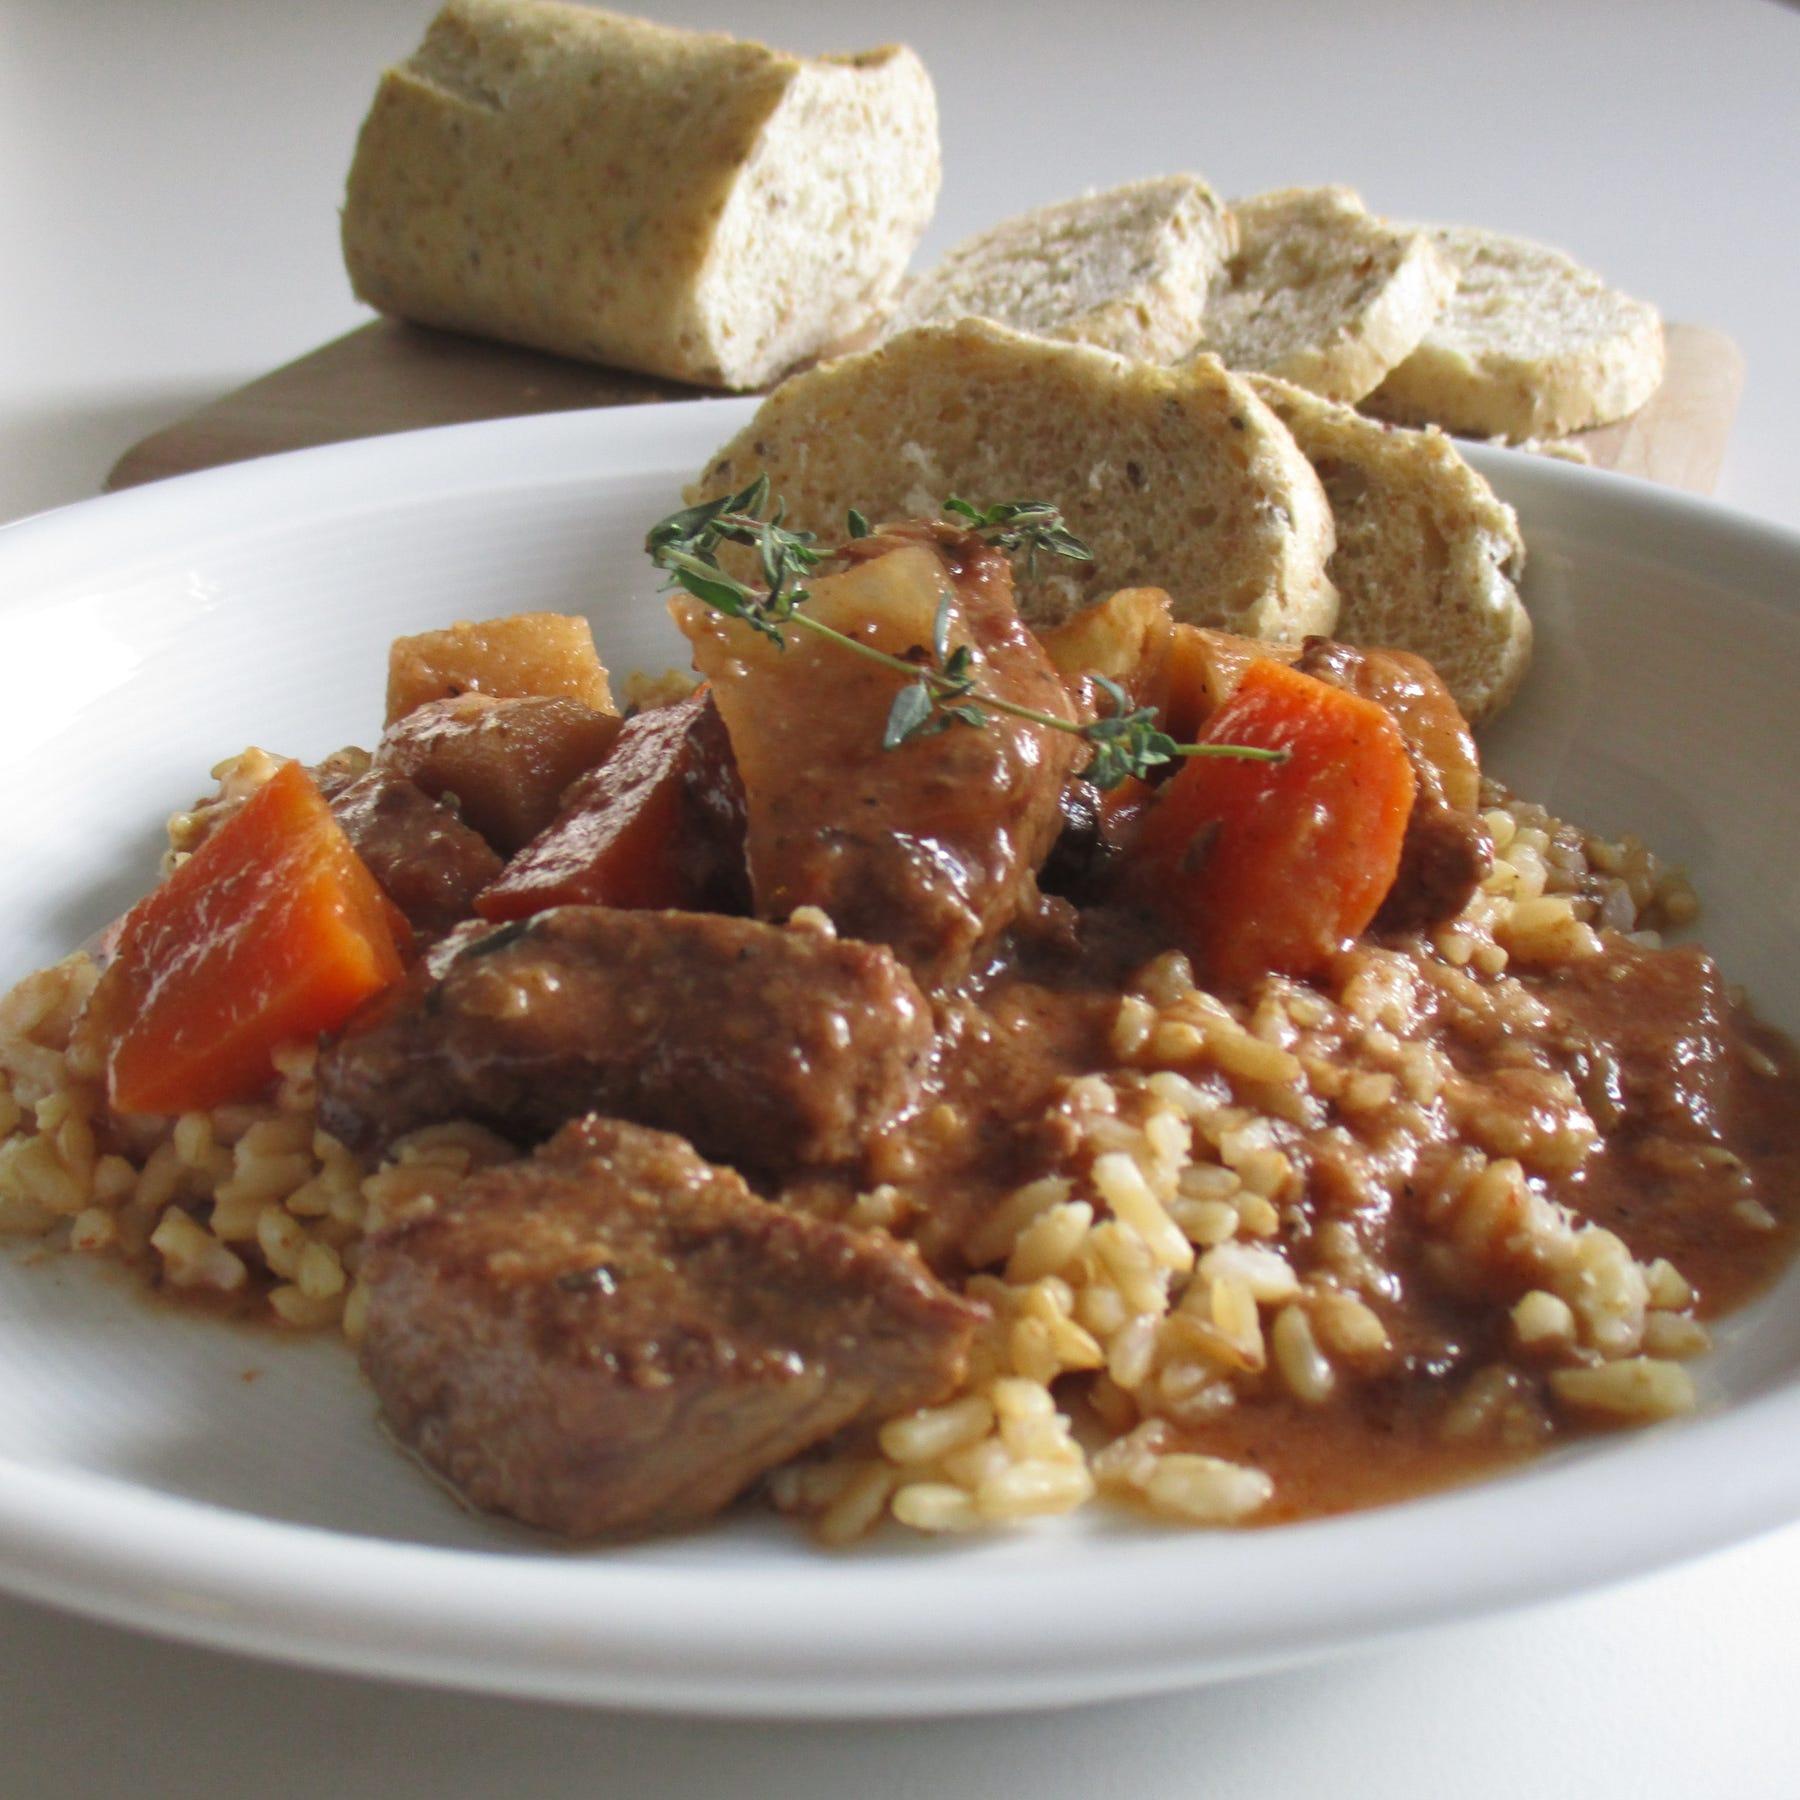 Parsnips among key ingredients in beef stew prepared in slow cooker